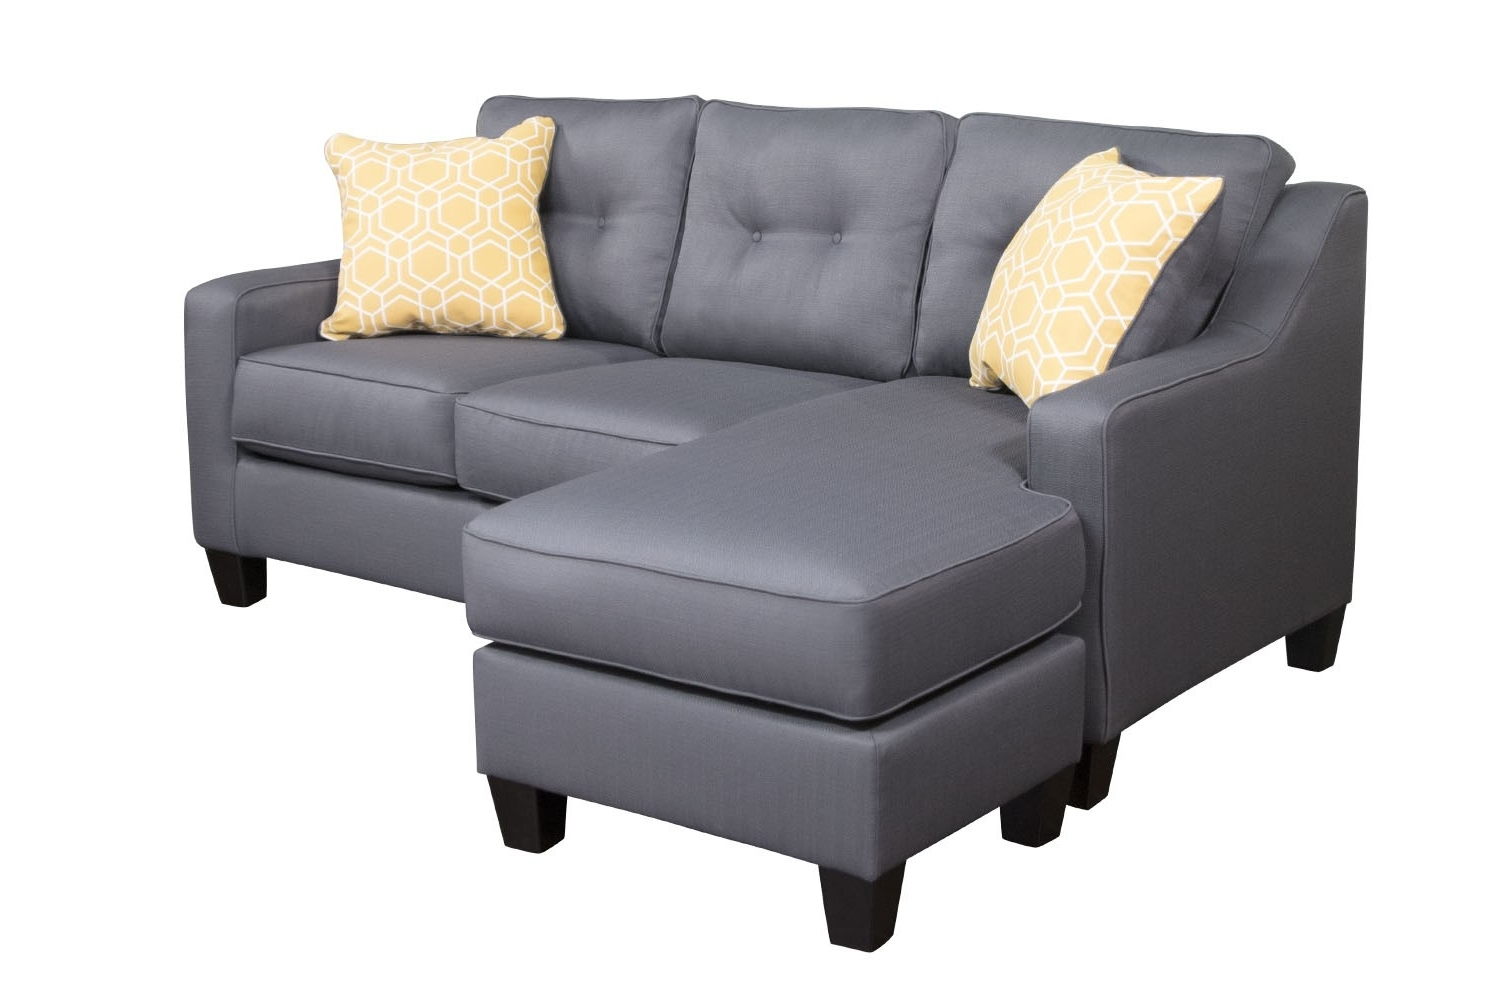 Gray Couches With Chaise Inside Trendy Aldie Gray Sofa Chaise (View 7 of 15)